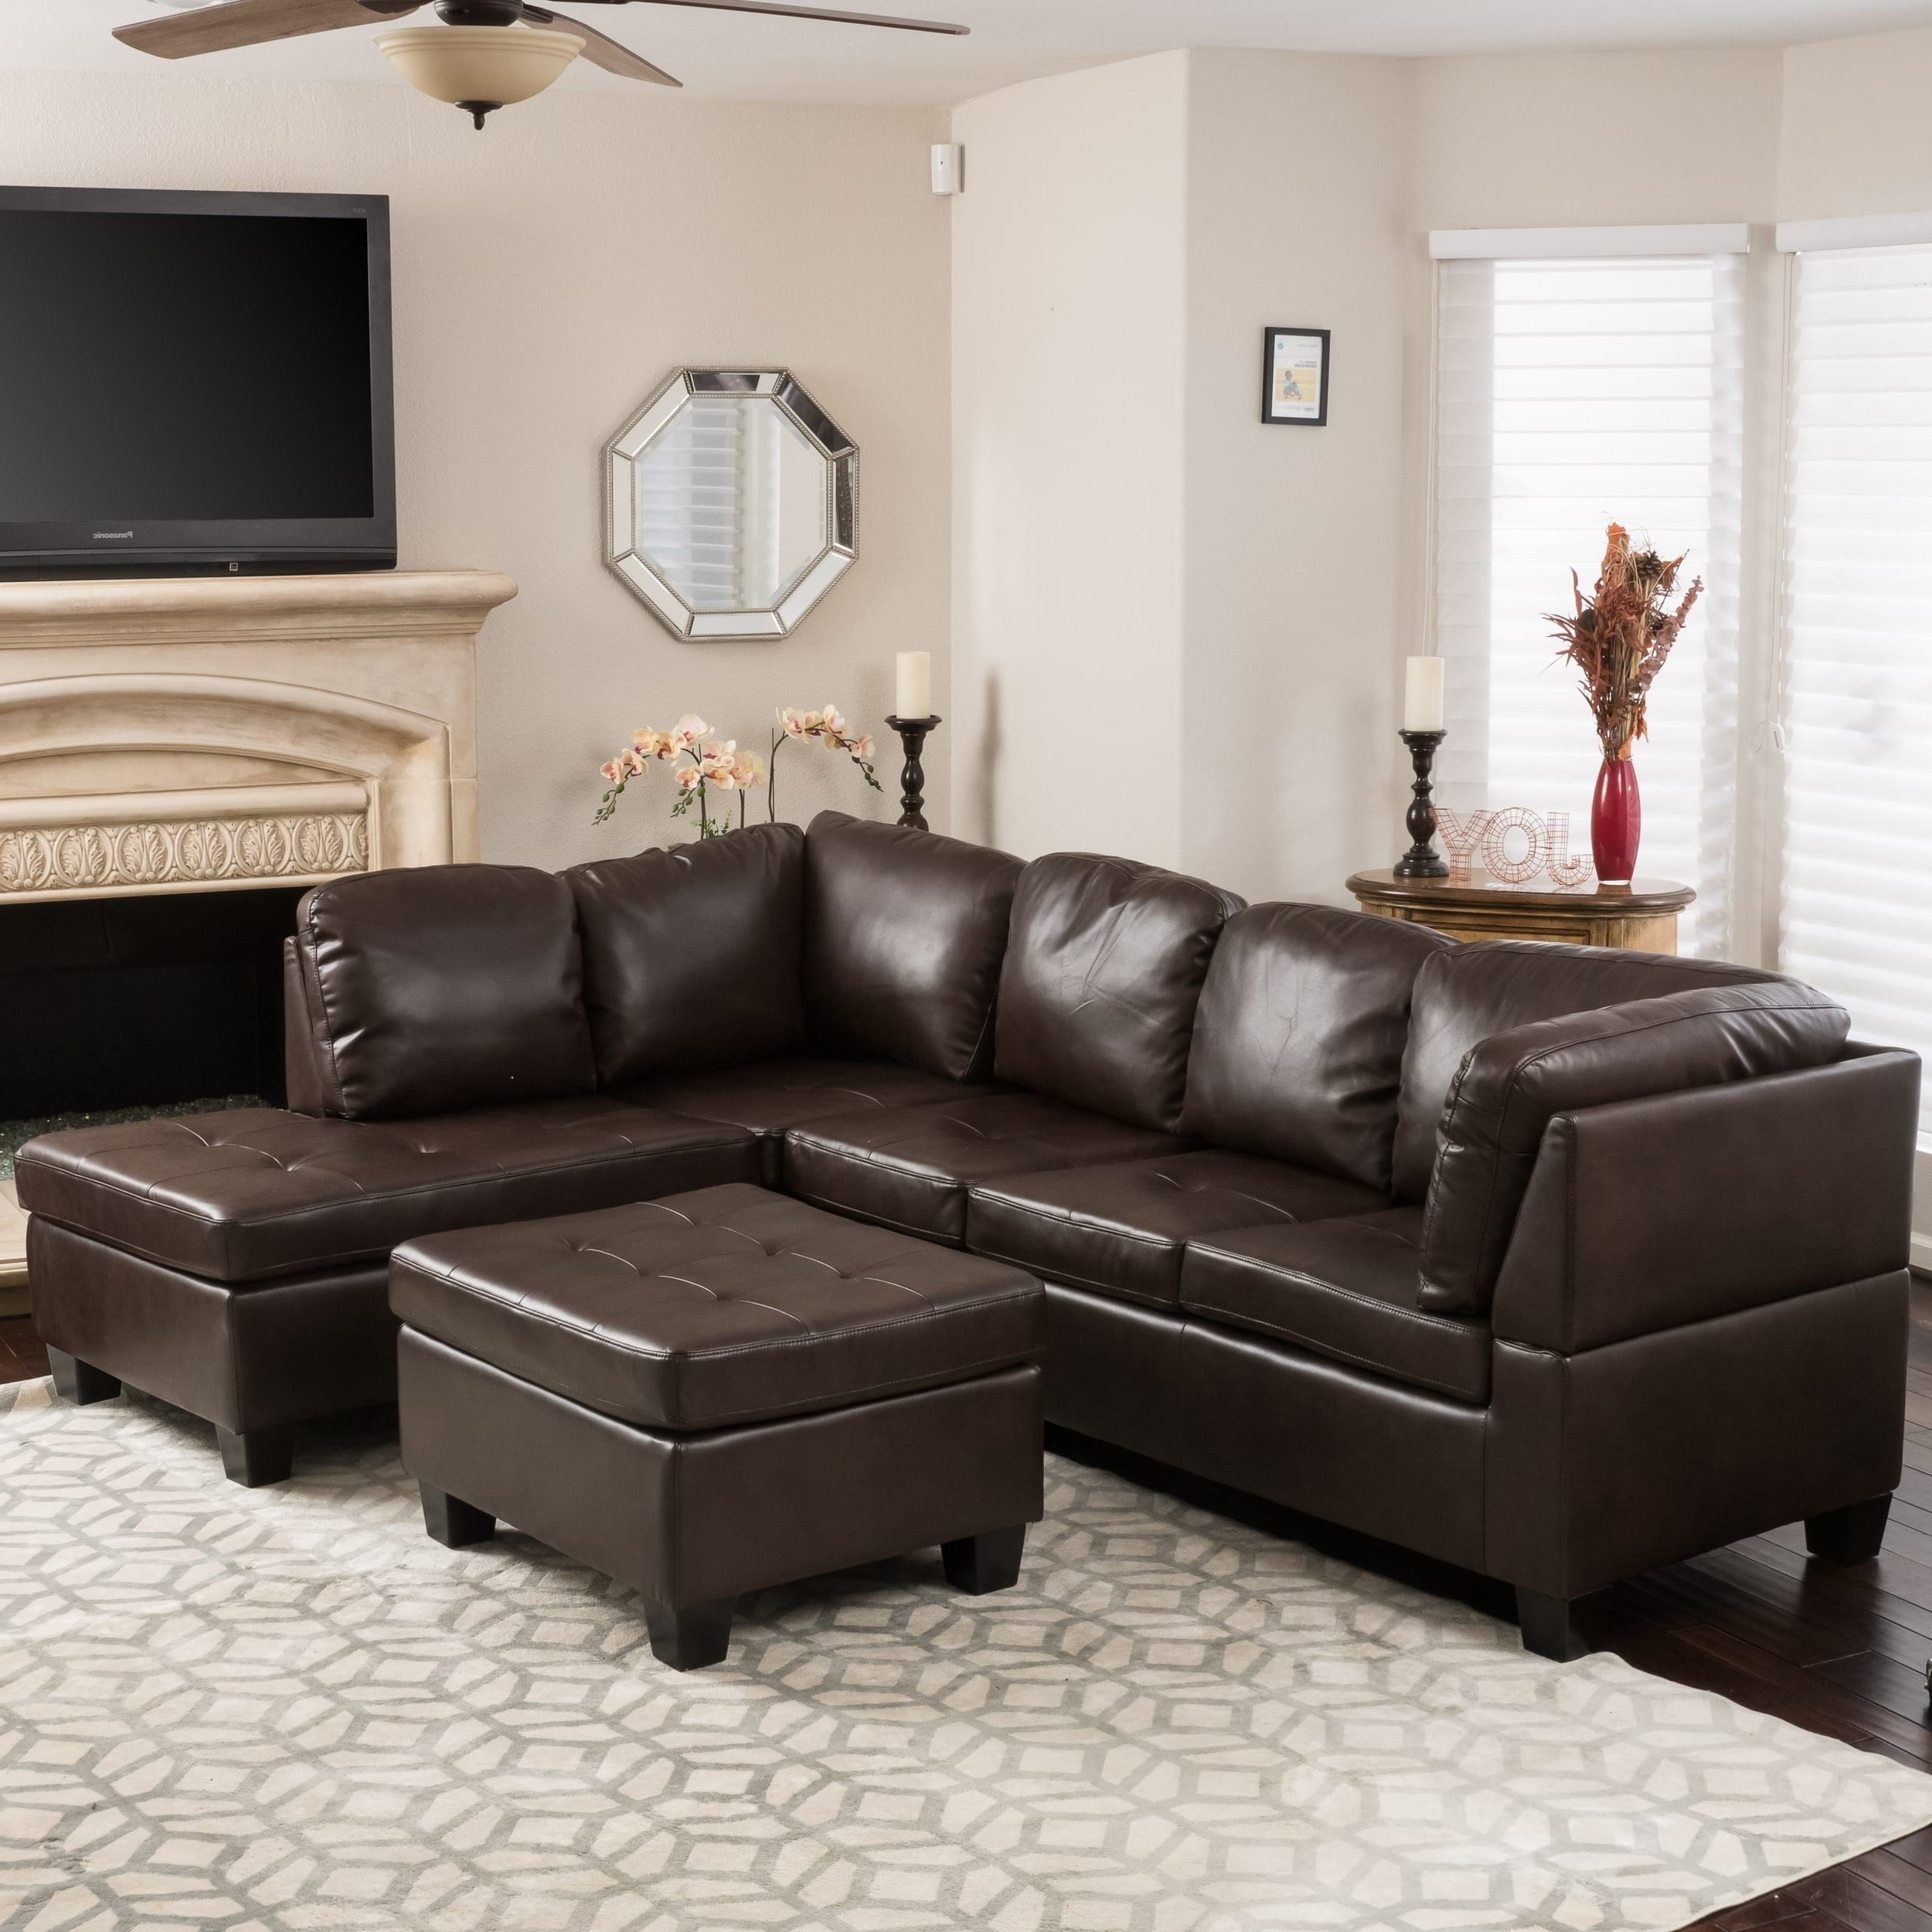 Canterbury 3 Piece Pu Leather Sectional Sofa Setchristopher Intended For Current Canterbury Leather Sofas (View 5 of 20)